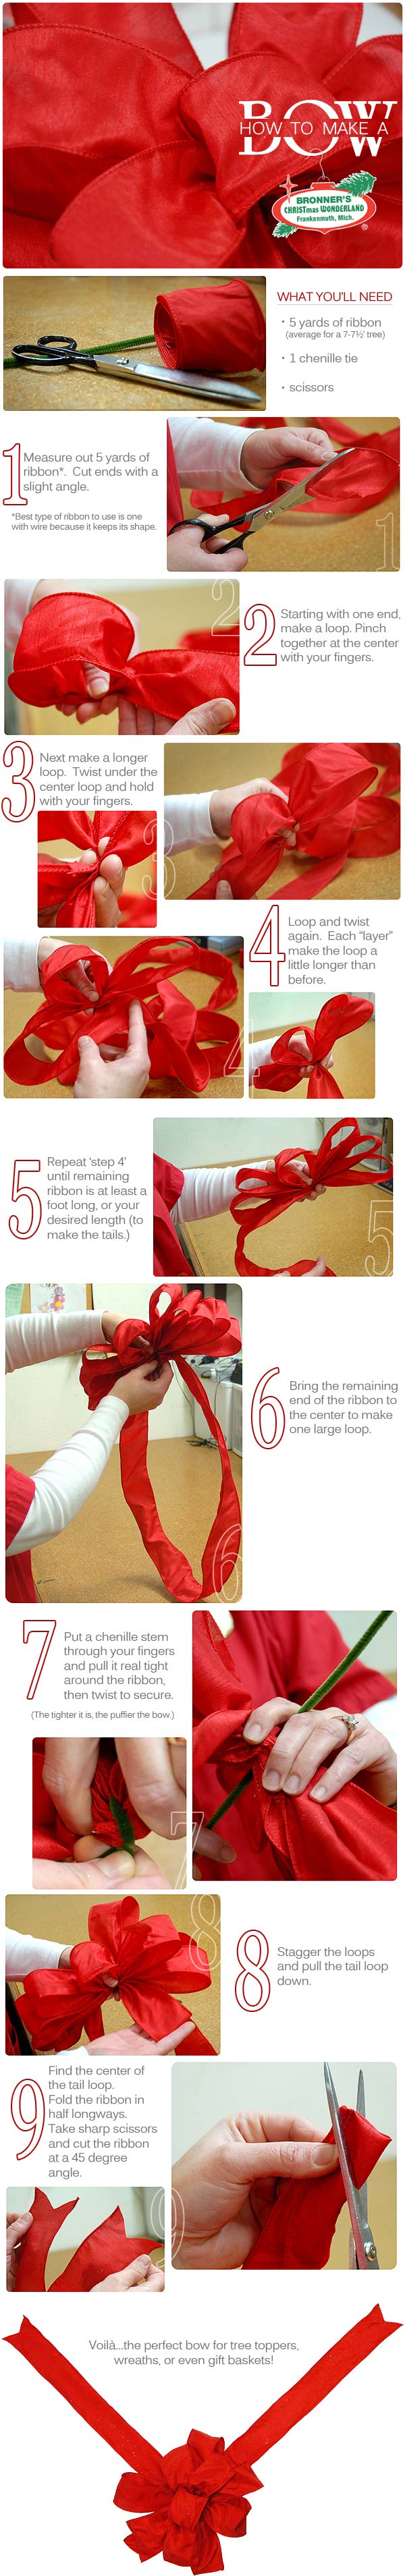 how to make a bow from Bronner's CHRISTmas Wonderland